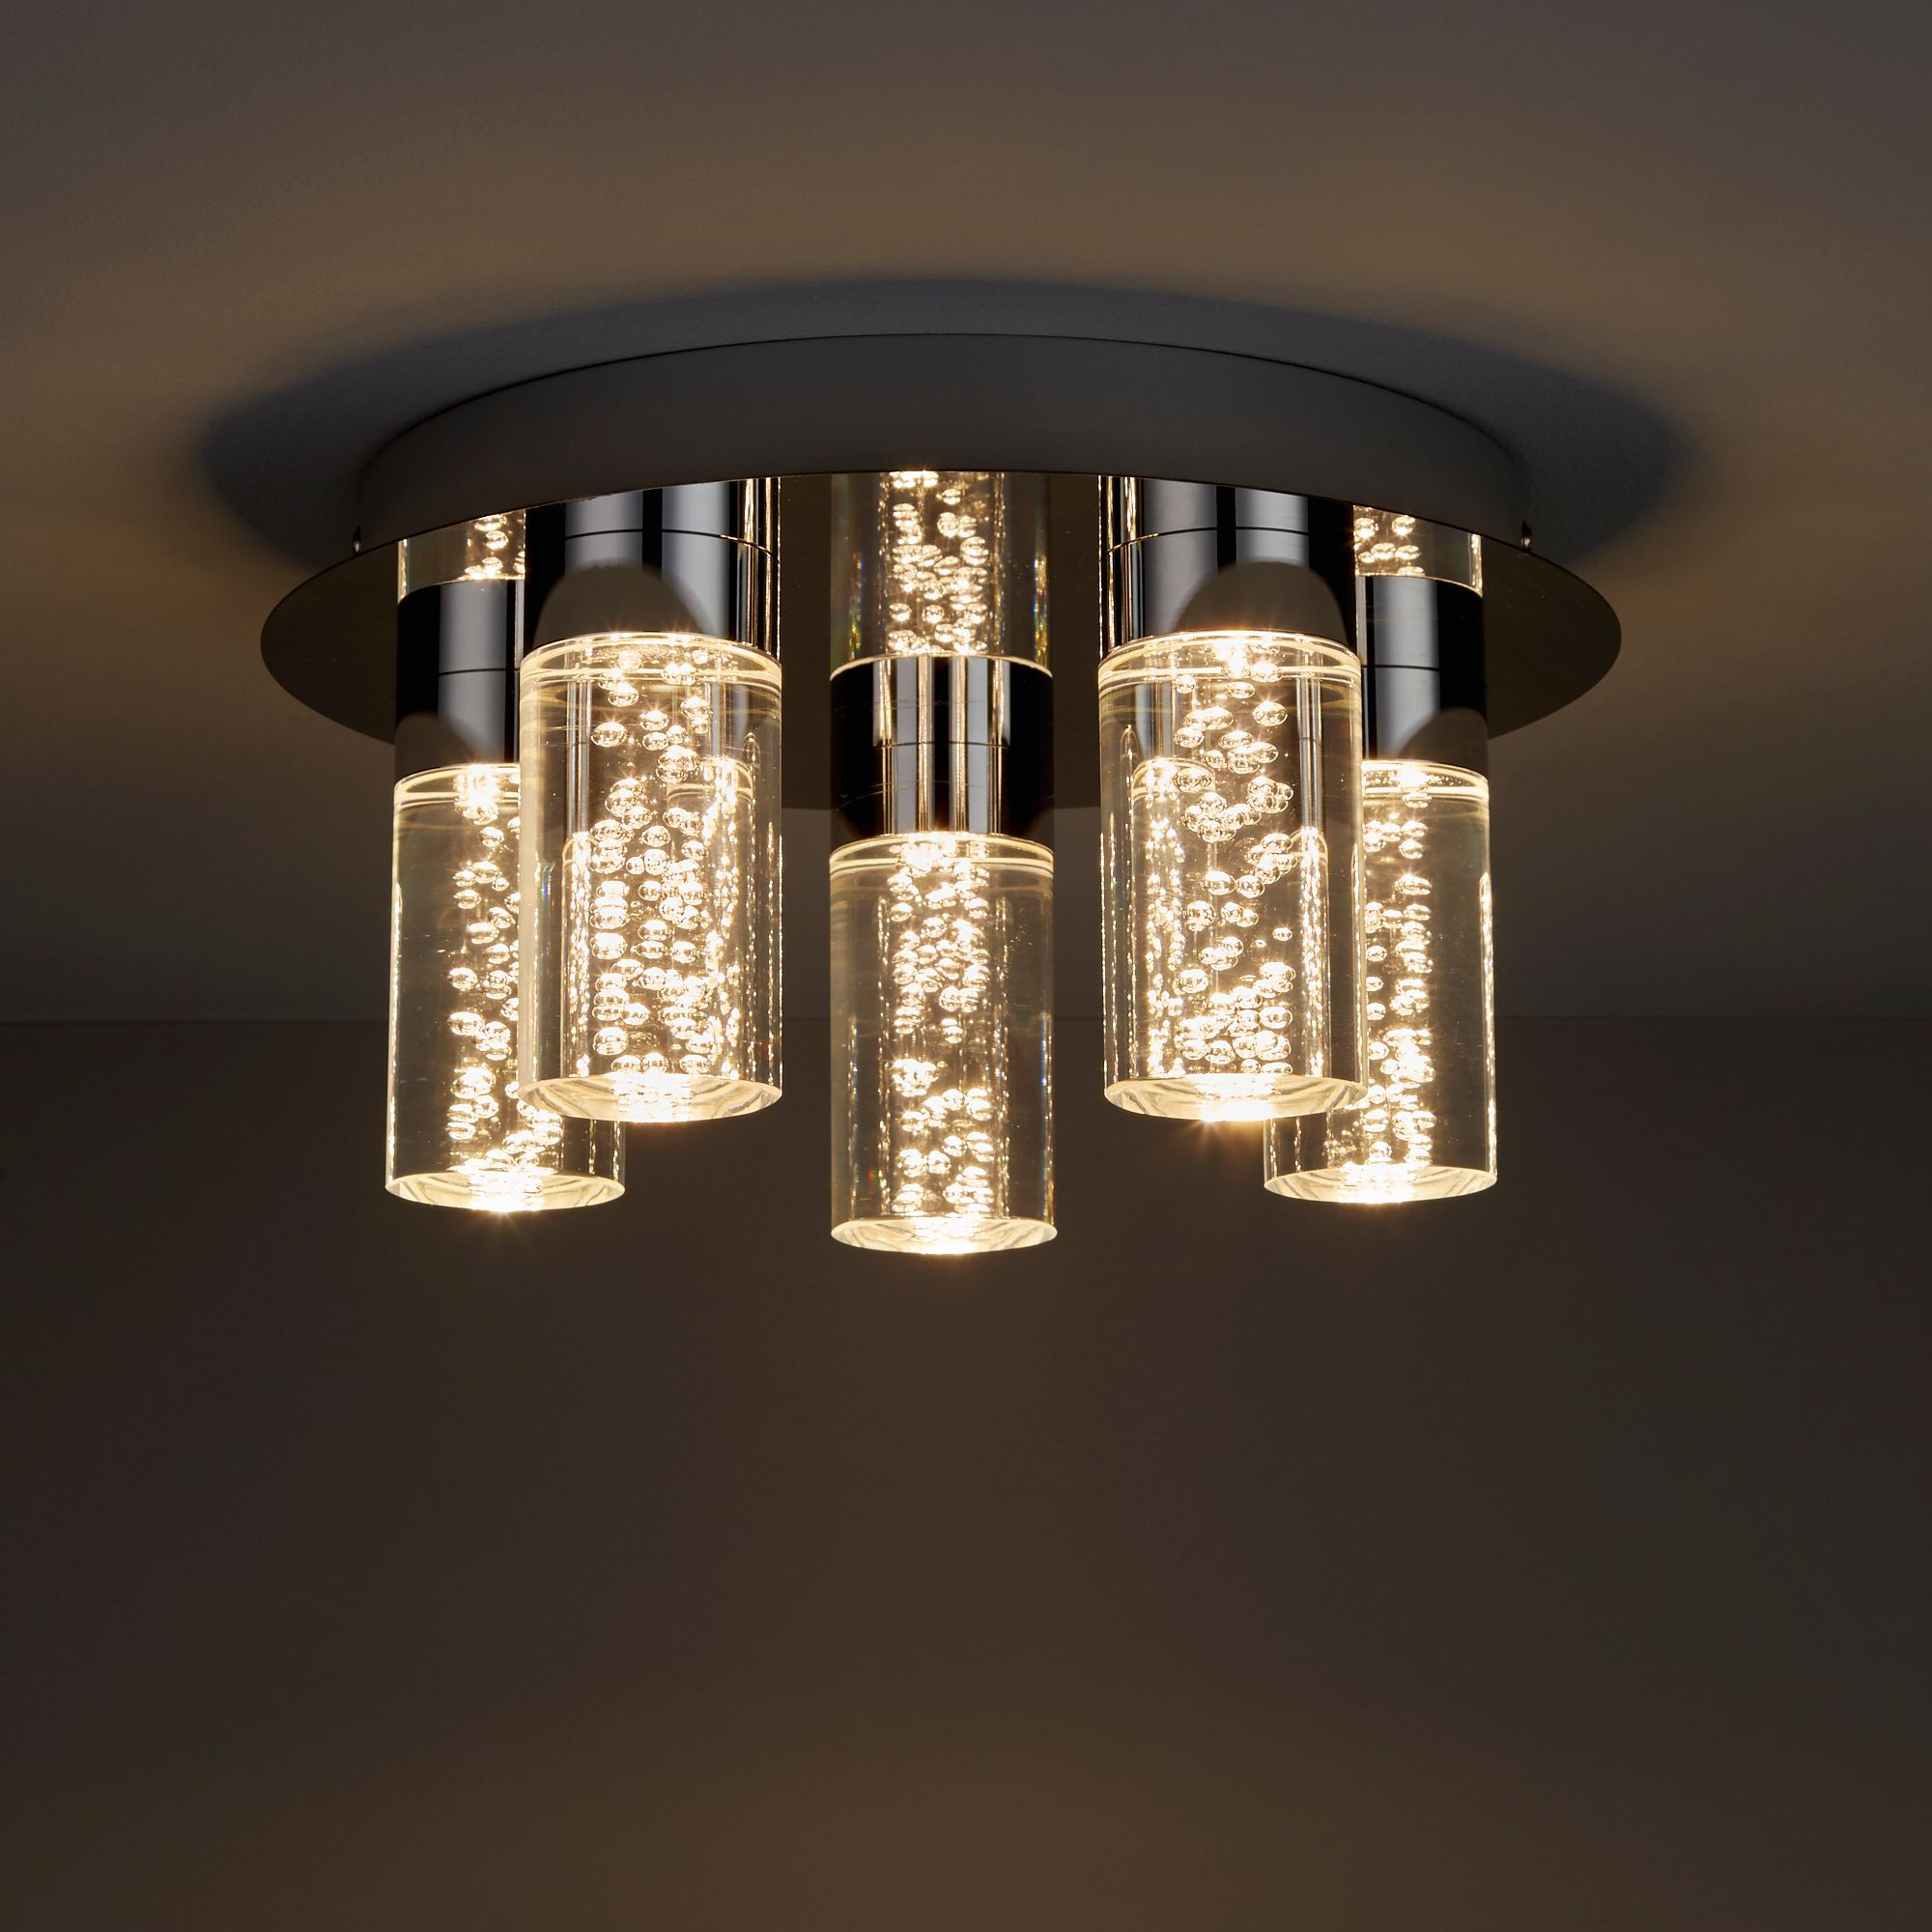 Hubble Chrome effect 5 Lamp Bathroom ceiling light ...